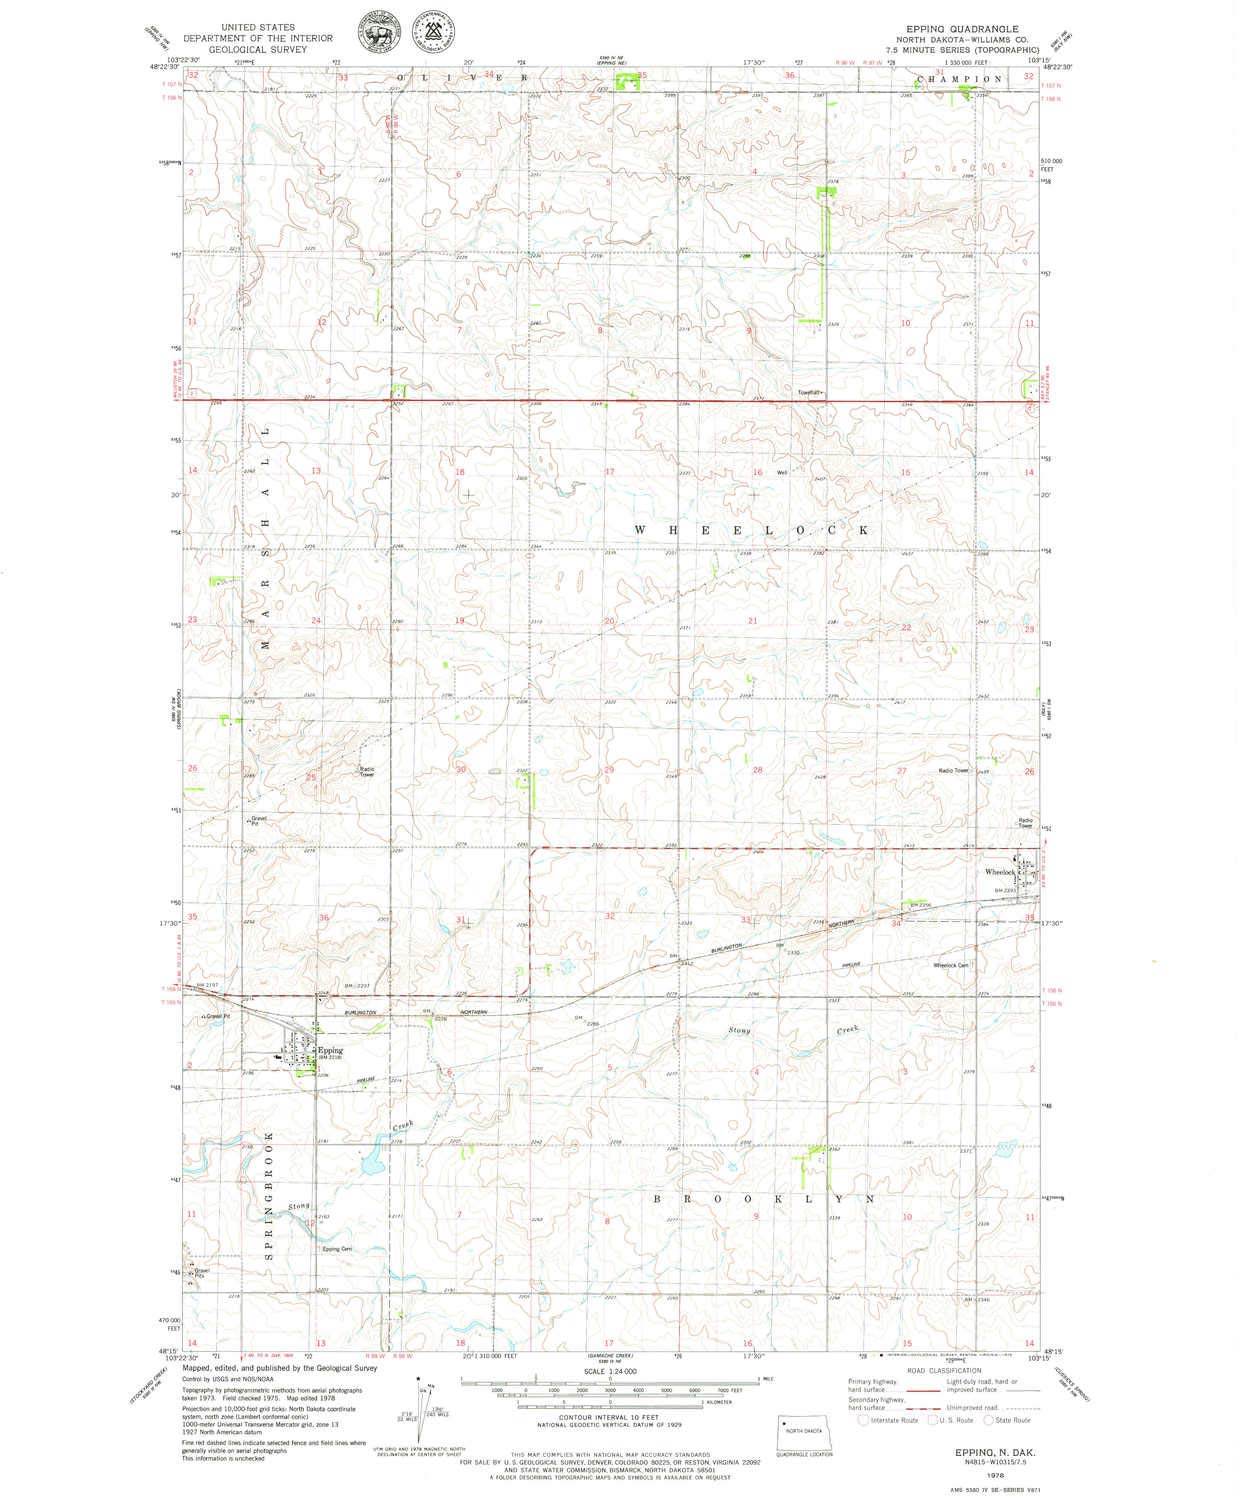 Amazon.com : YellowMaps Epping ND topo map, 1:24000 Scale ... on map of lakota nd, map of larimore nd, map of west fargo nd, map of watford city nd, map of kindred nd, map of underwood nd, map of valley city nd, map of belfield nd, map of new town nd, map of mandan nd, map of hazen nd, map of fessenden nd, map of lincoln nd, map of beach nd, map of hankinson nd, map of sutton nd, map of devils lake nd, map of zap nd, map of williams county nd, map of garrison nd,